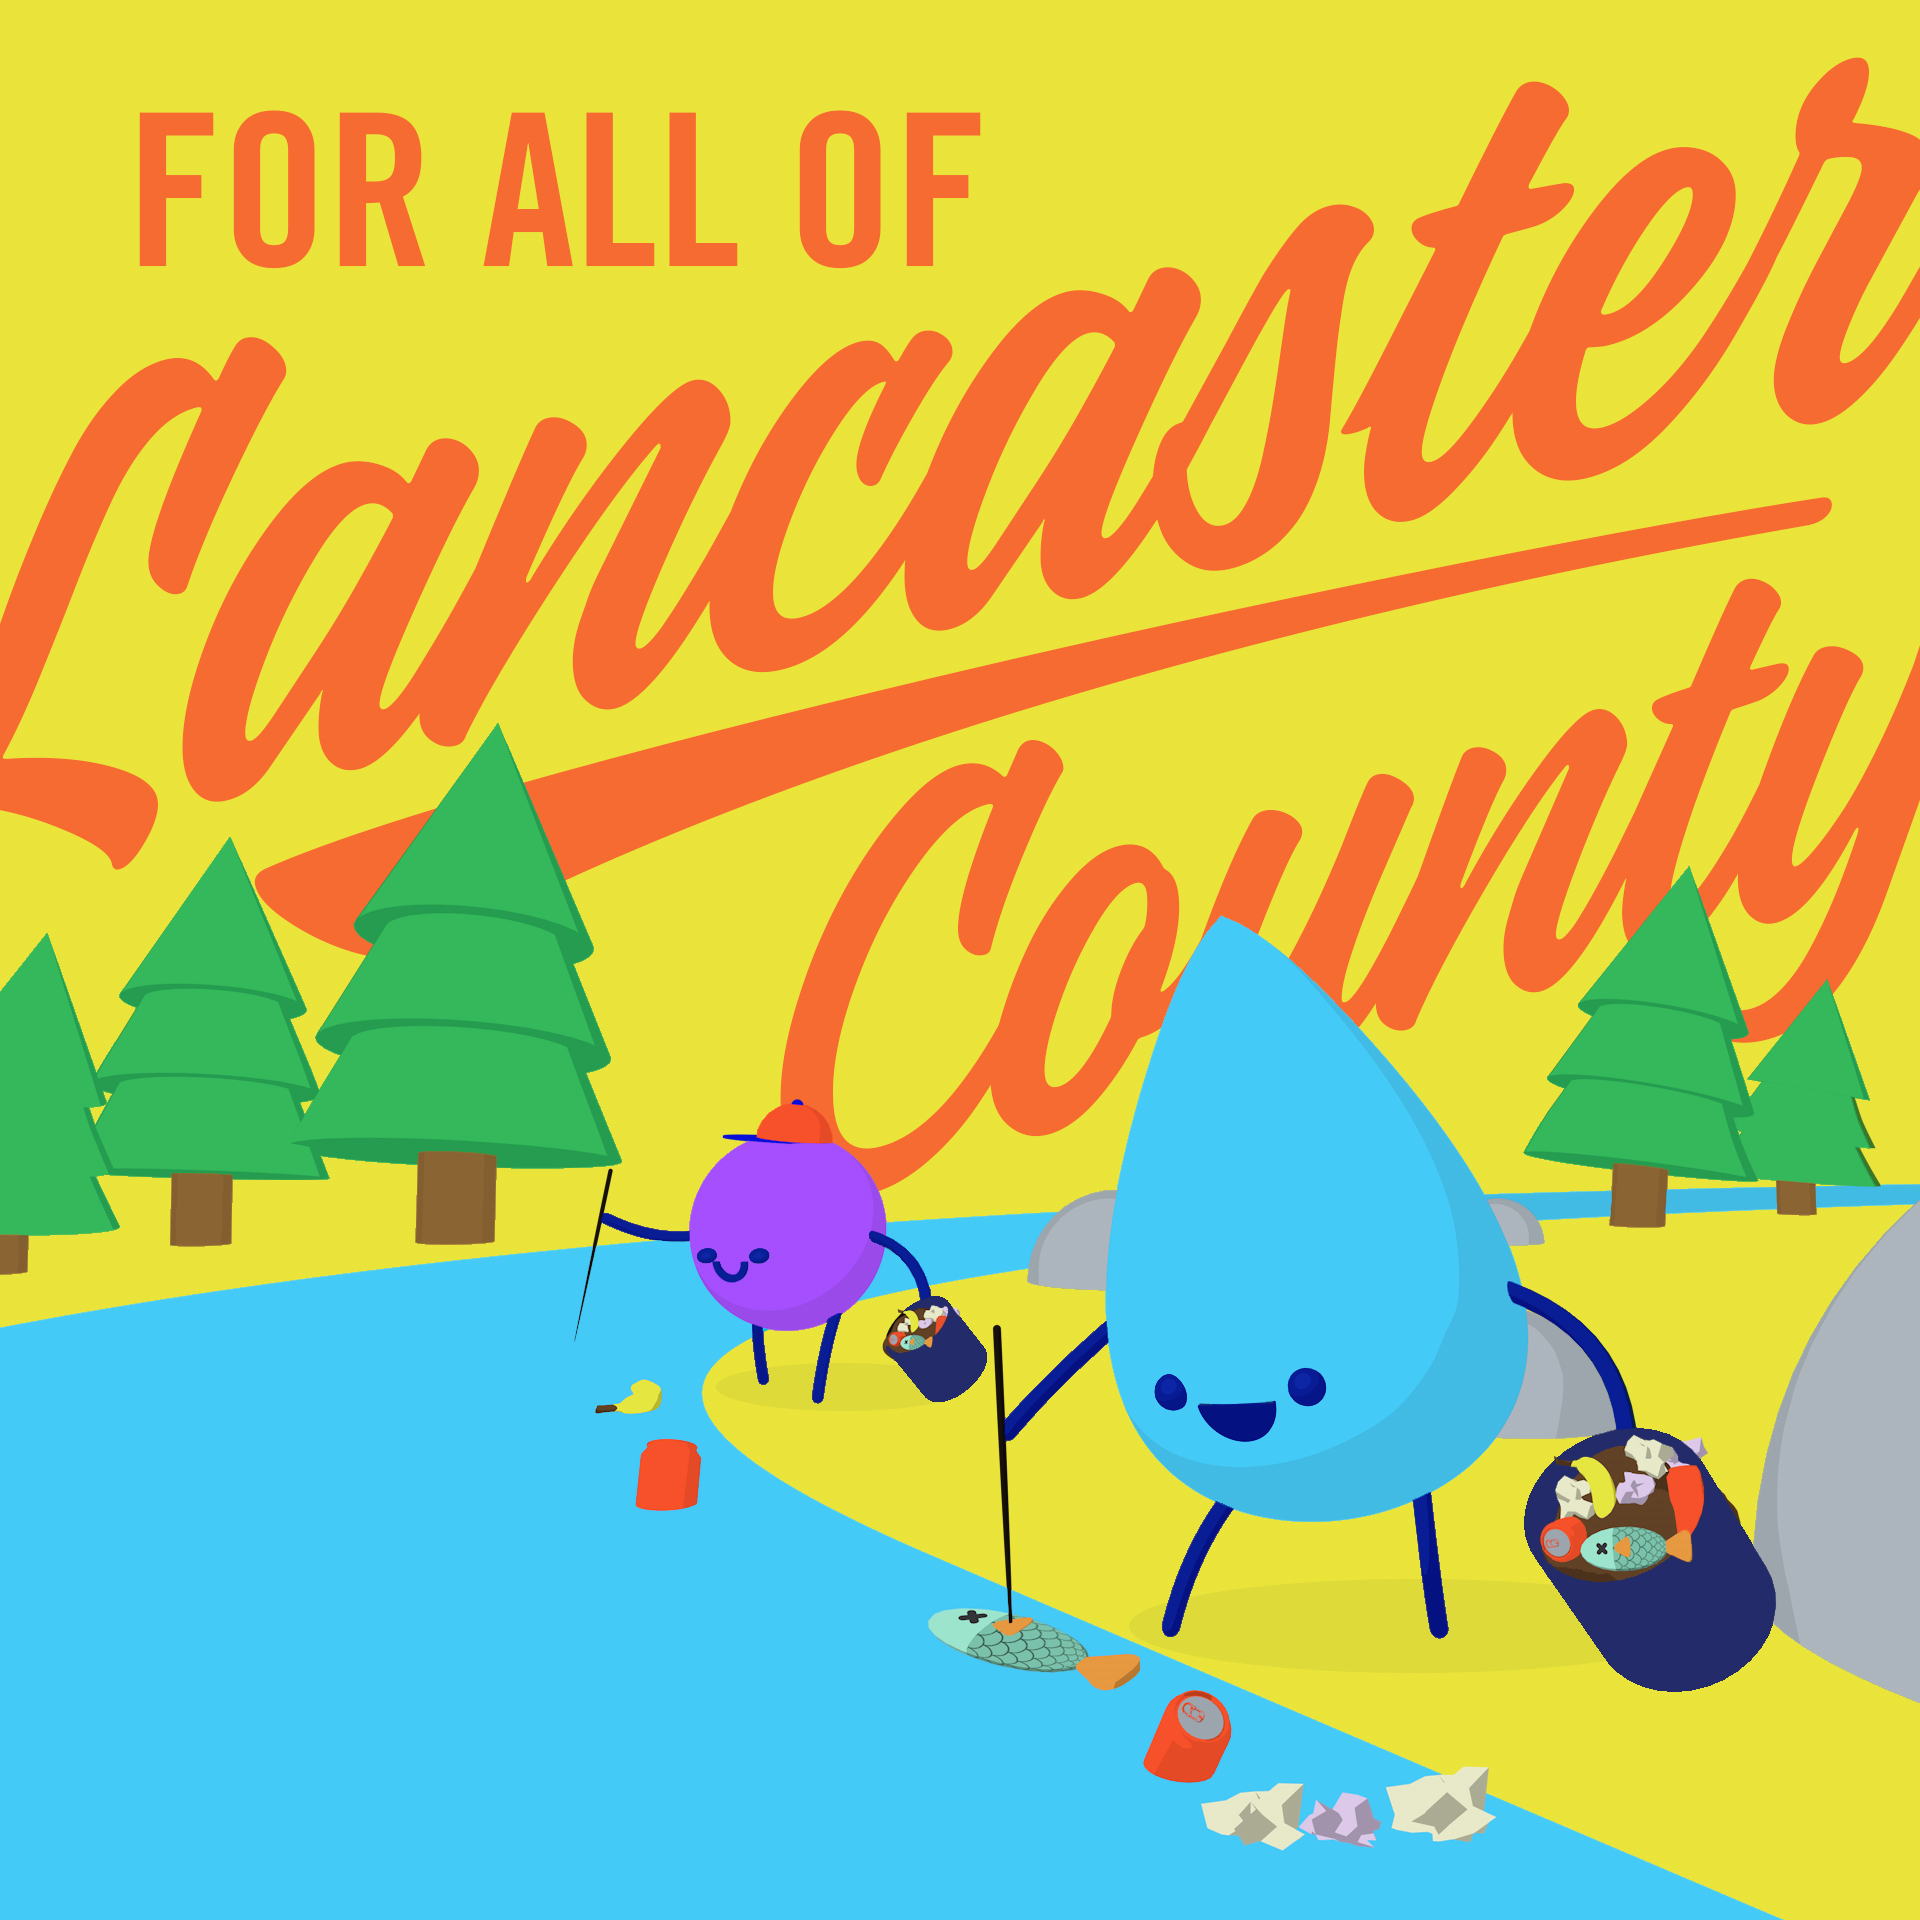 Jimmy and Droppy picking up litter with text that reads 'for all of Lancaster County'